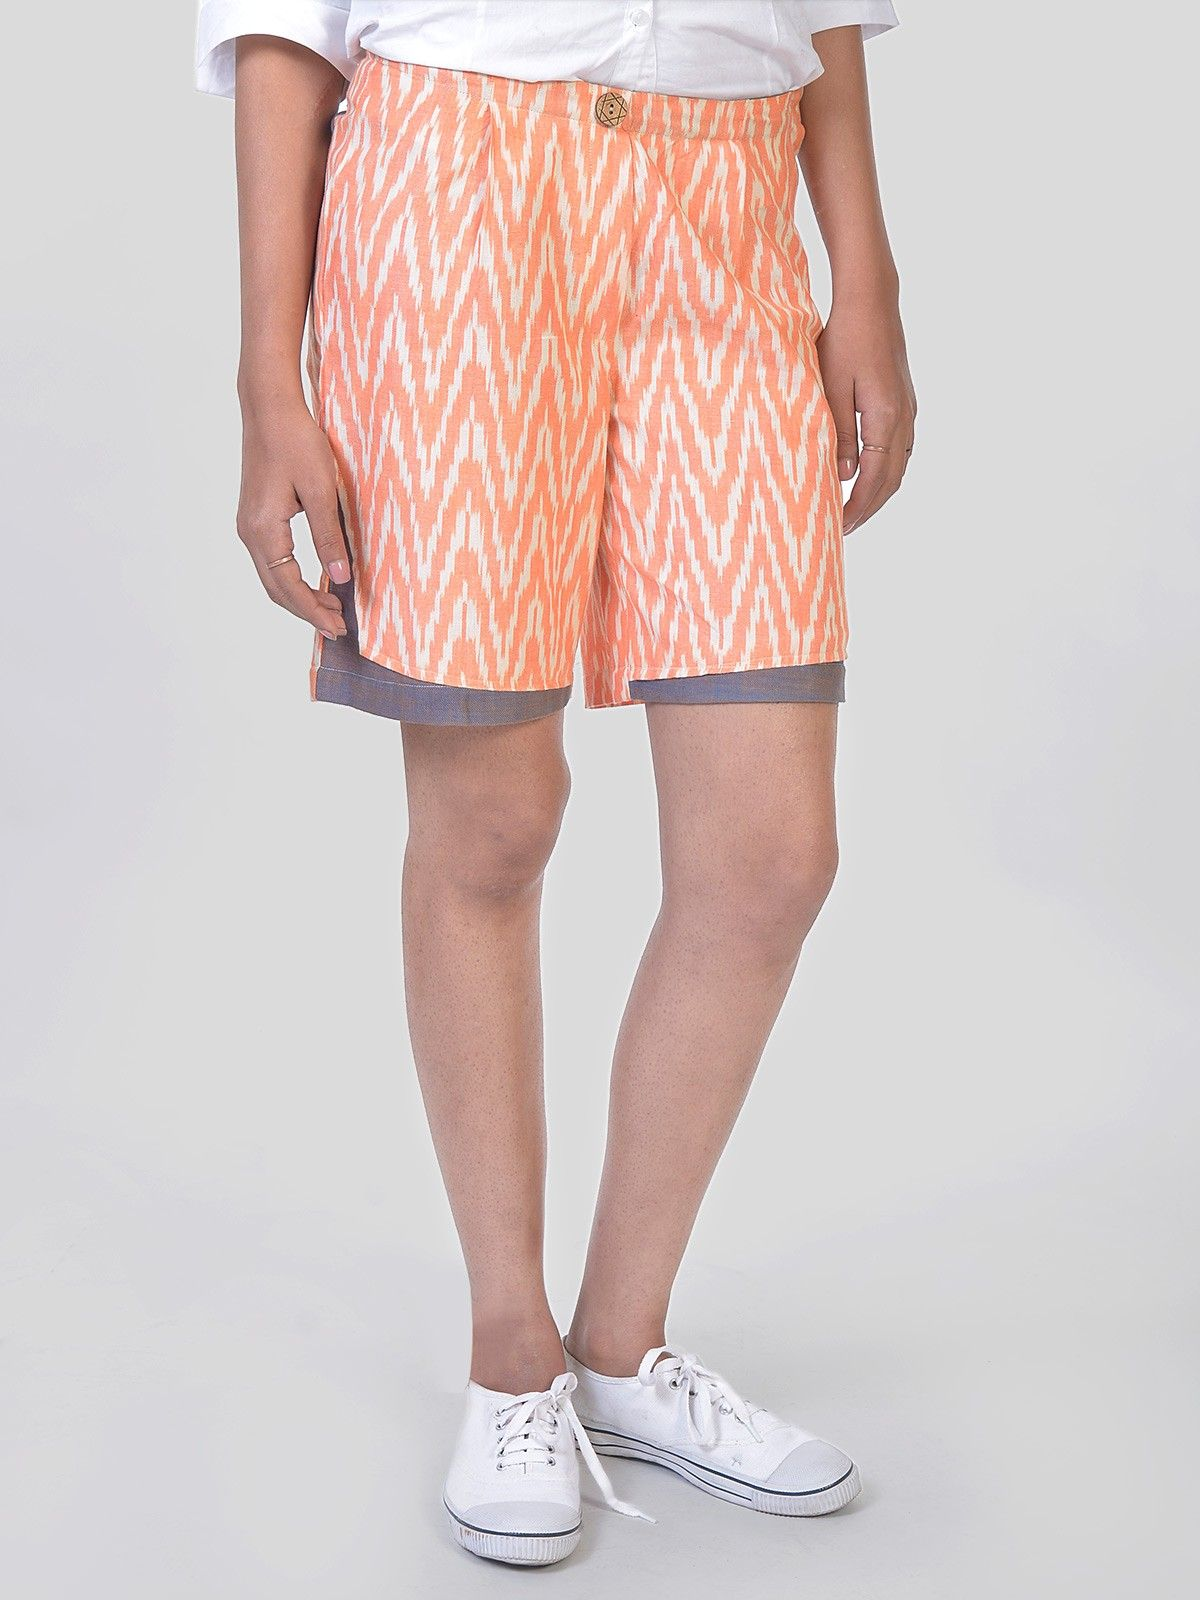 Peach Buttoned shorts